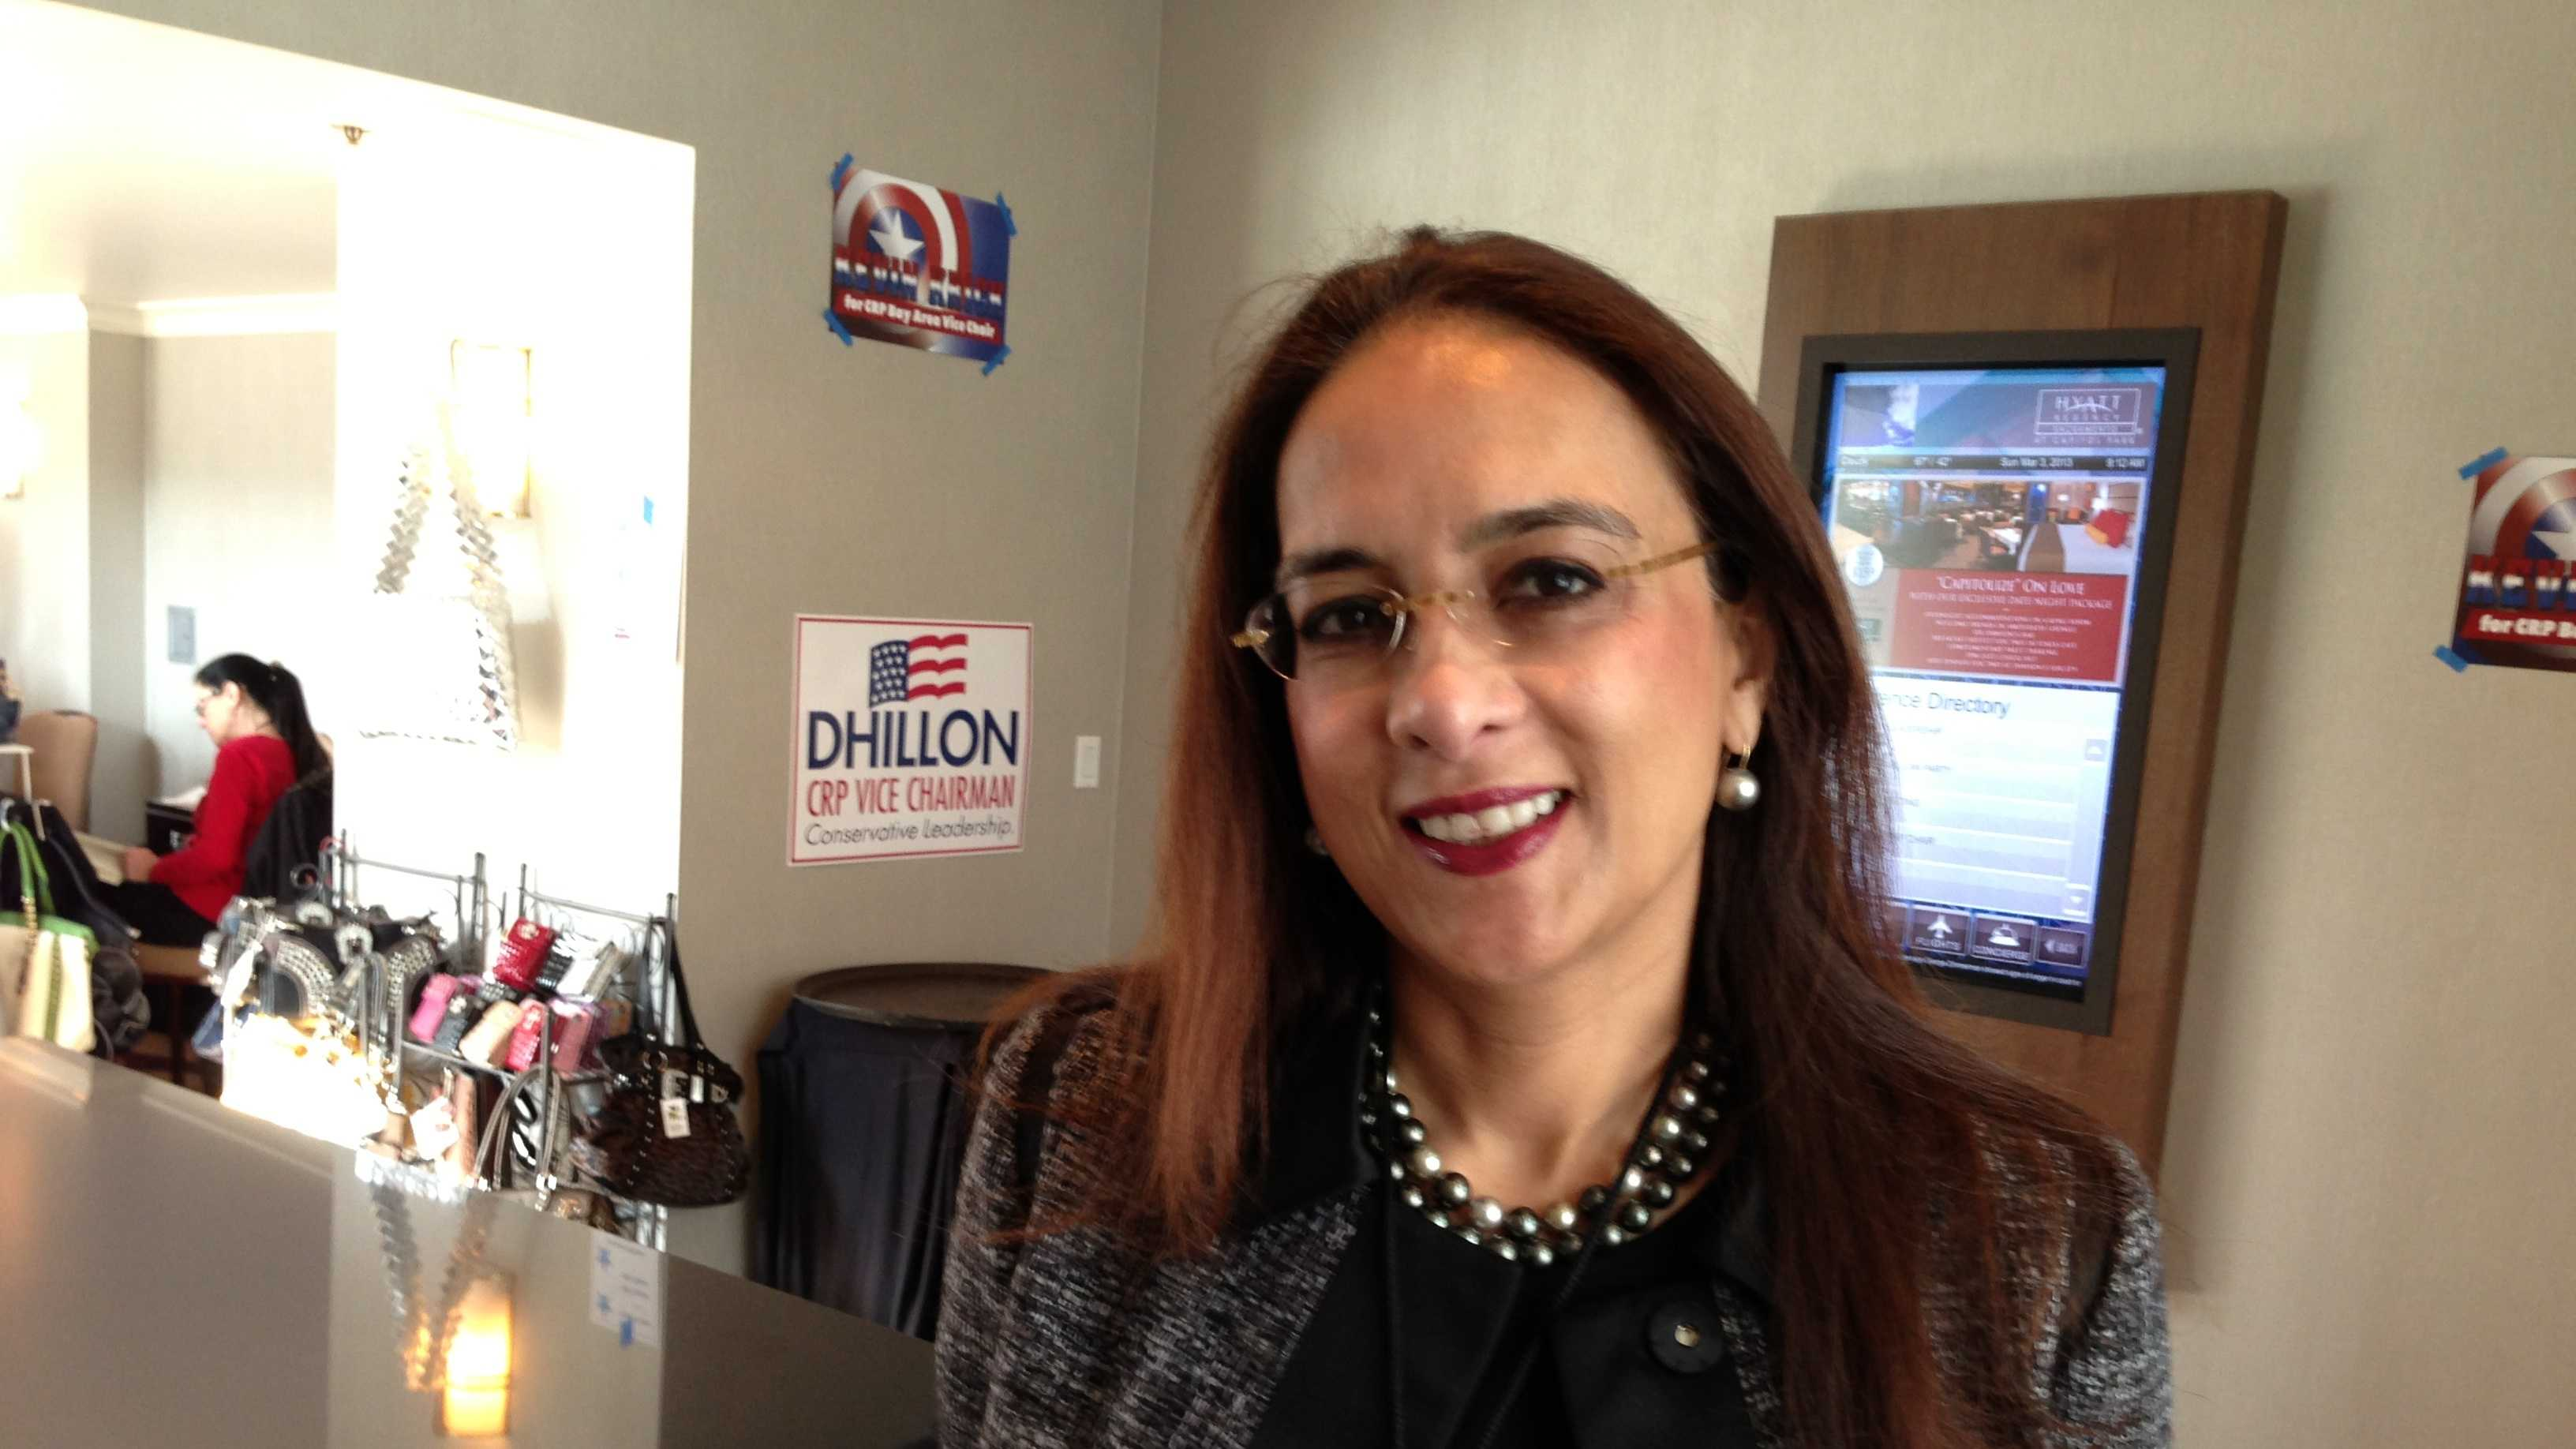 Harmeet Dhillon of San Francisco is a candidate for Vice Chairman of the California Republican Party.